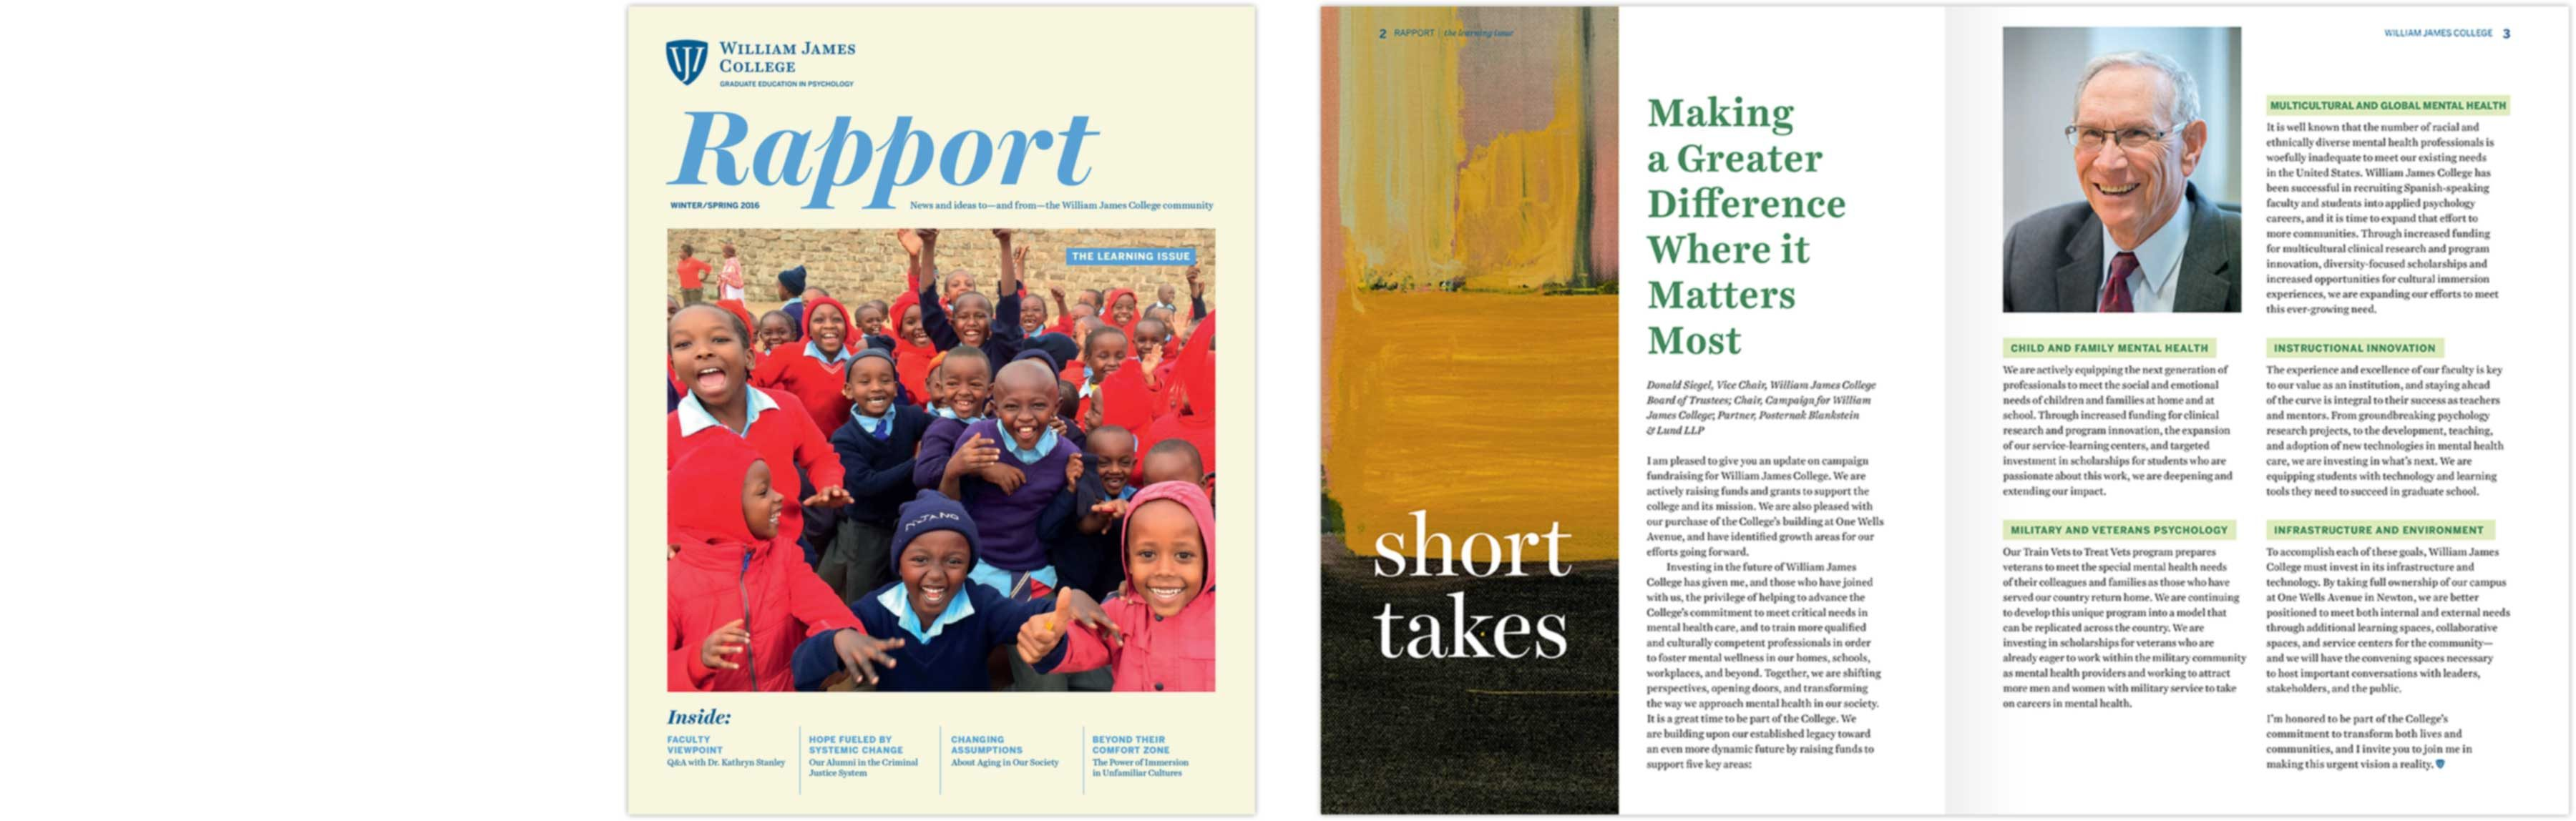 William James College Rapport cover and interior spread: Making a Greater Difference Where it Matters Most